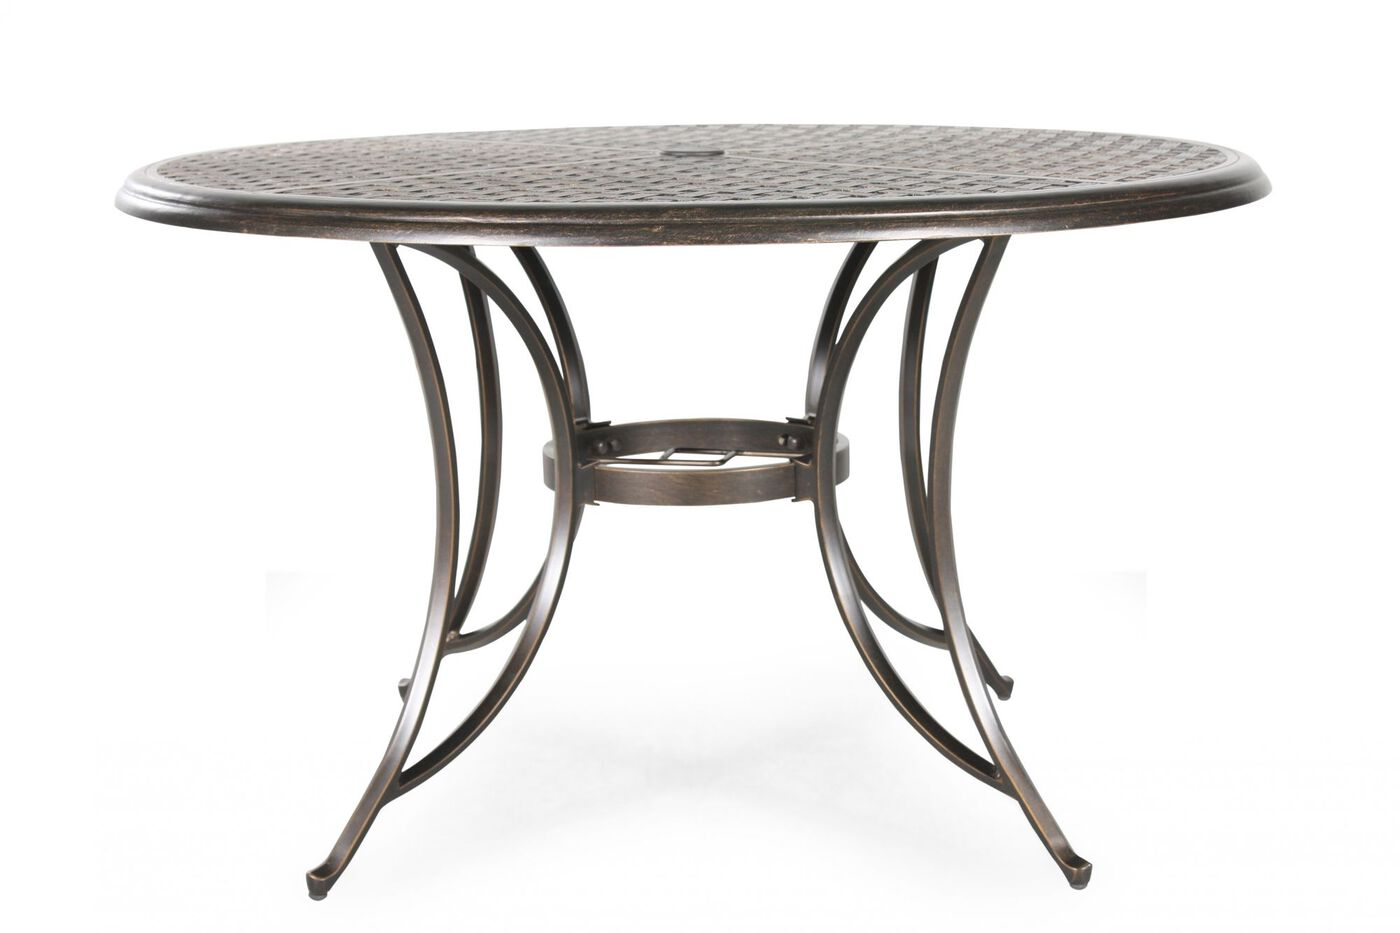 agio heritage select patio dining table mathis brothers